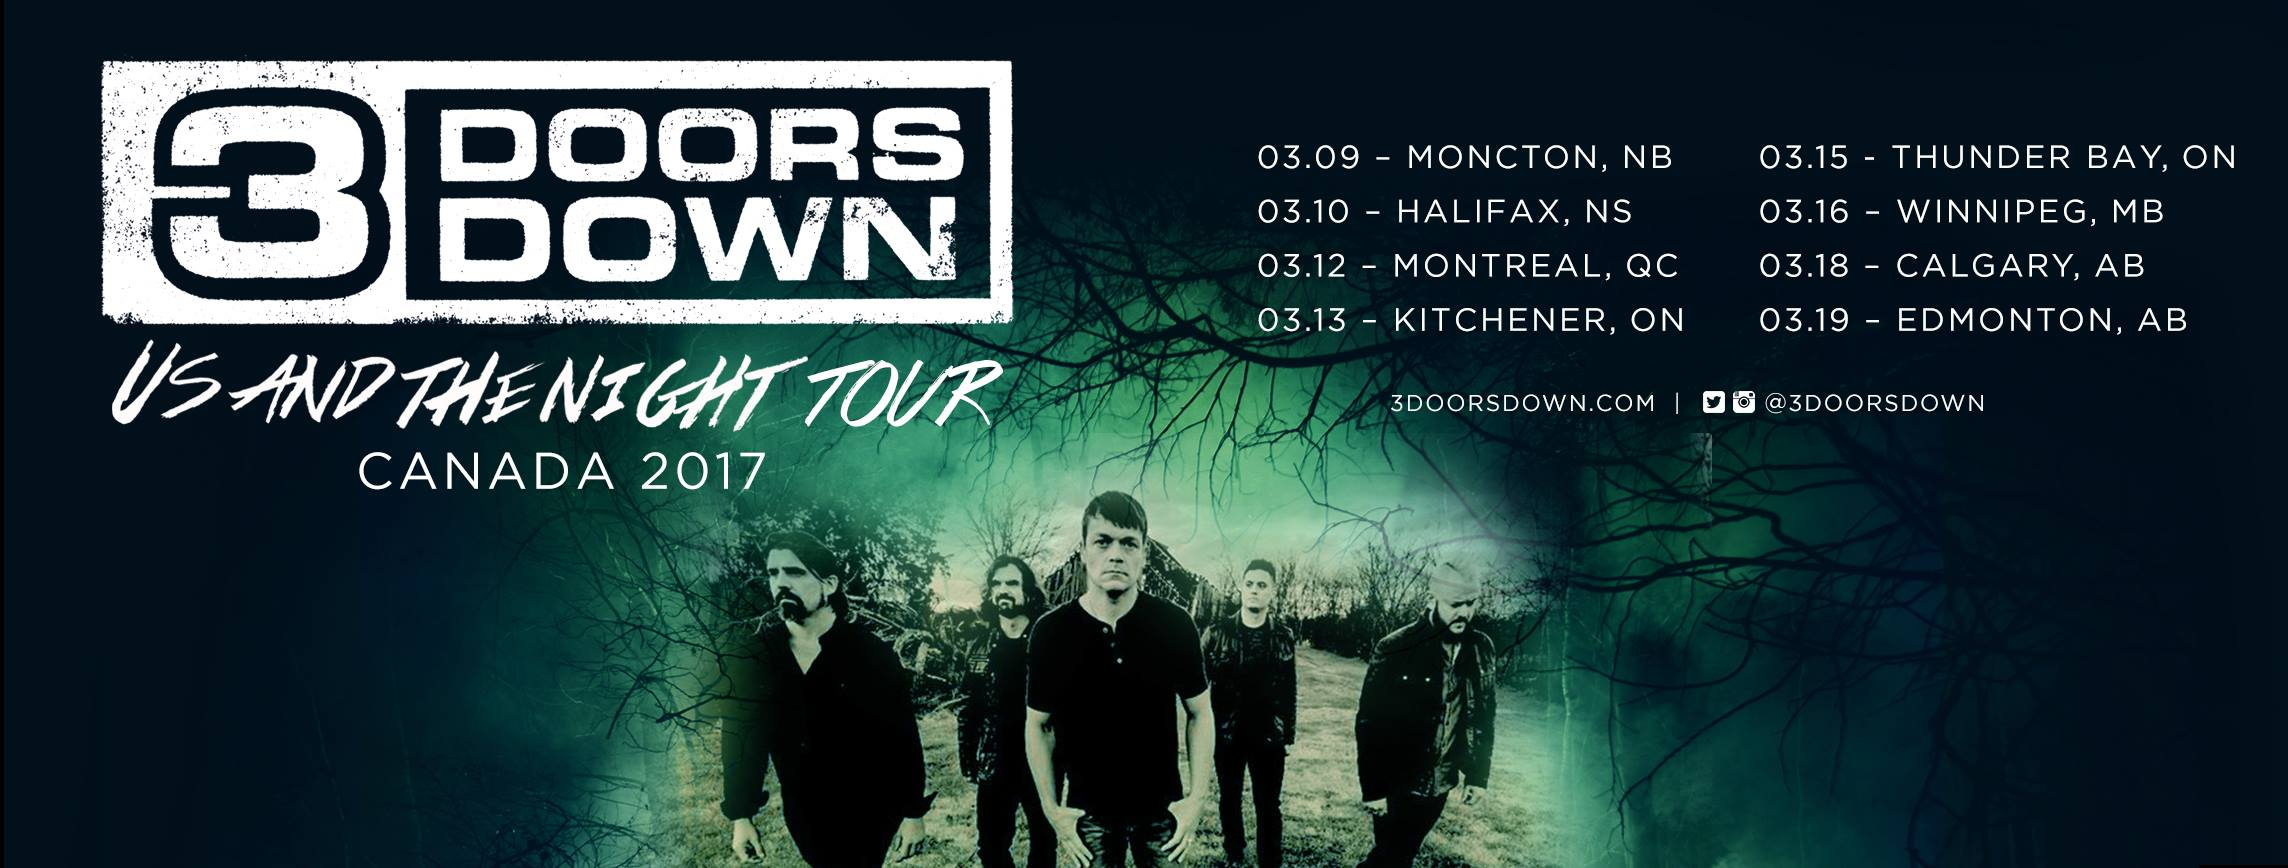 3 Doors Down - Tour 2017